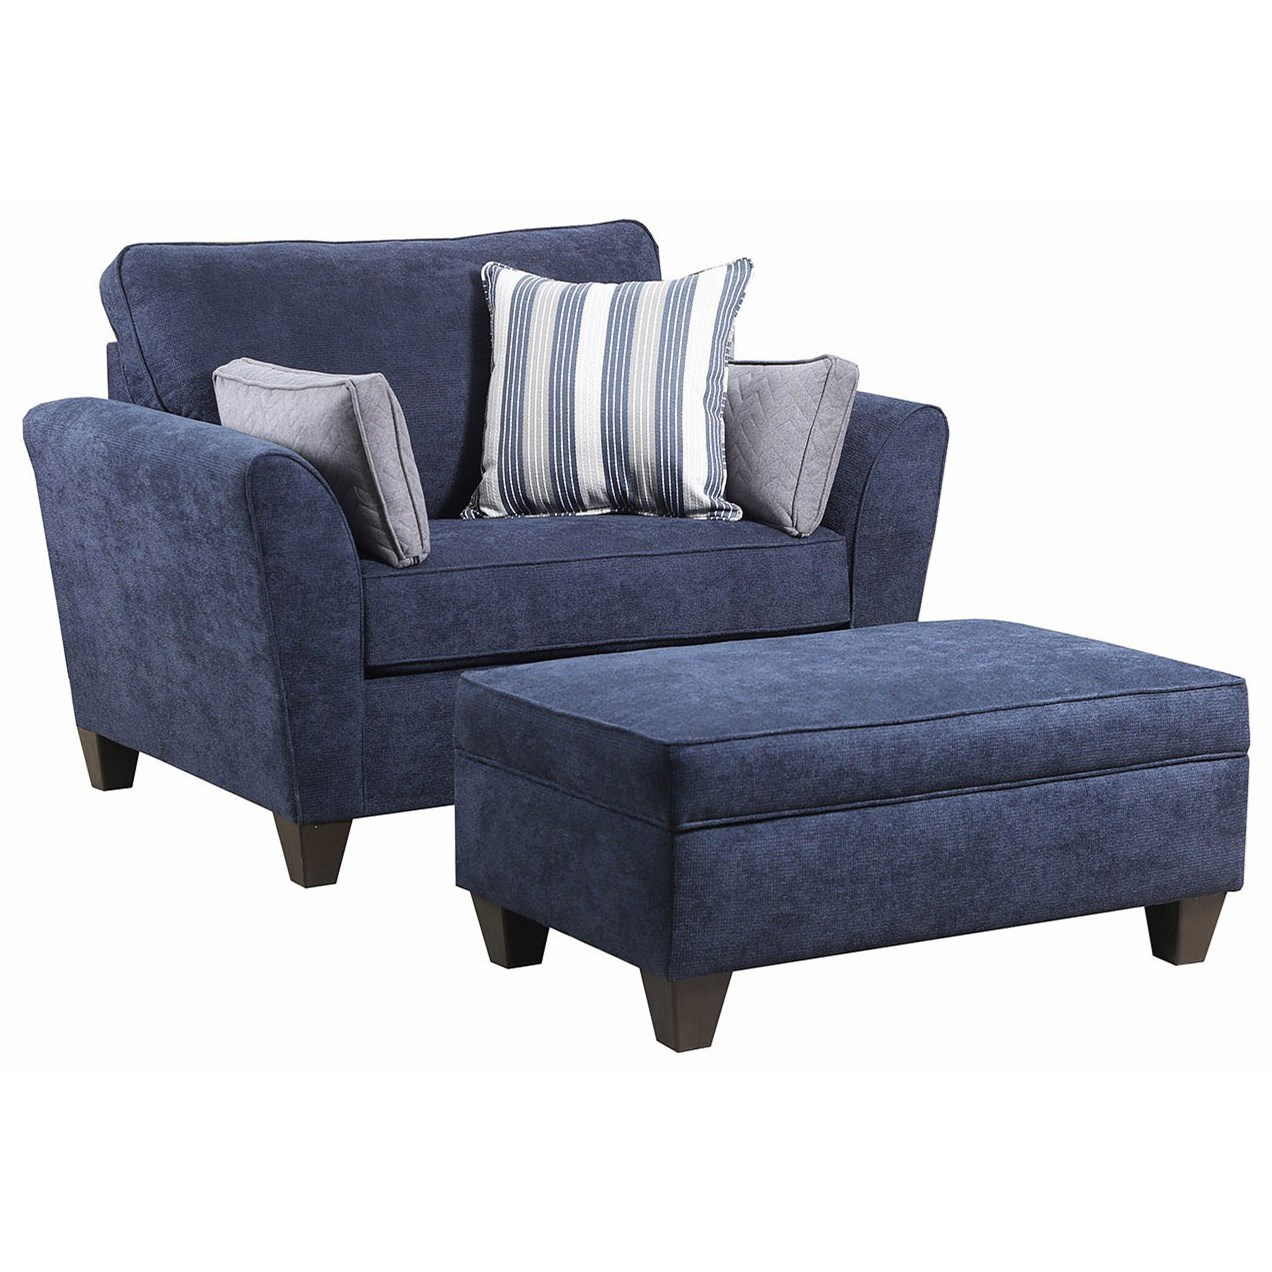 7081 Chair and a Half and Ottoman Set  by Lane at Powell's Furniture and Mattress